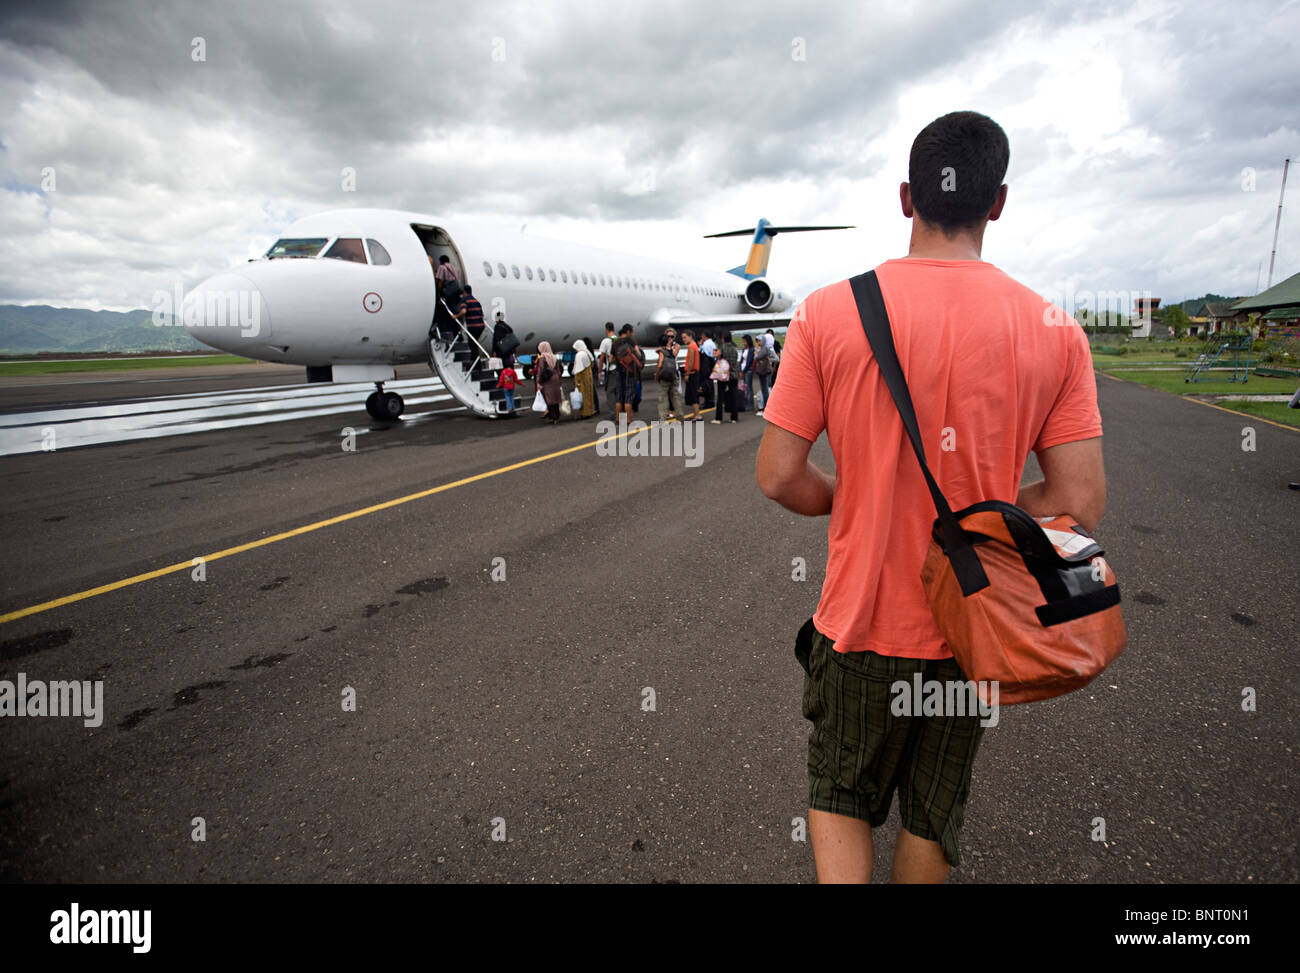 Tall man with shoulder bag walks to airplane. - Stock Image